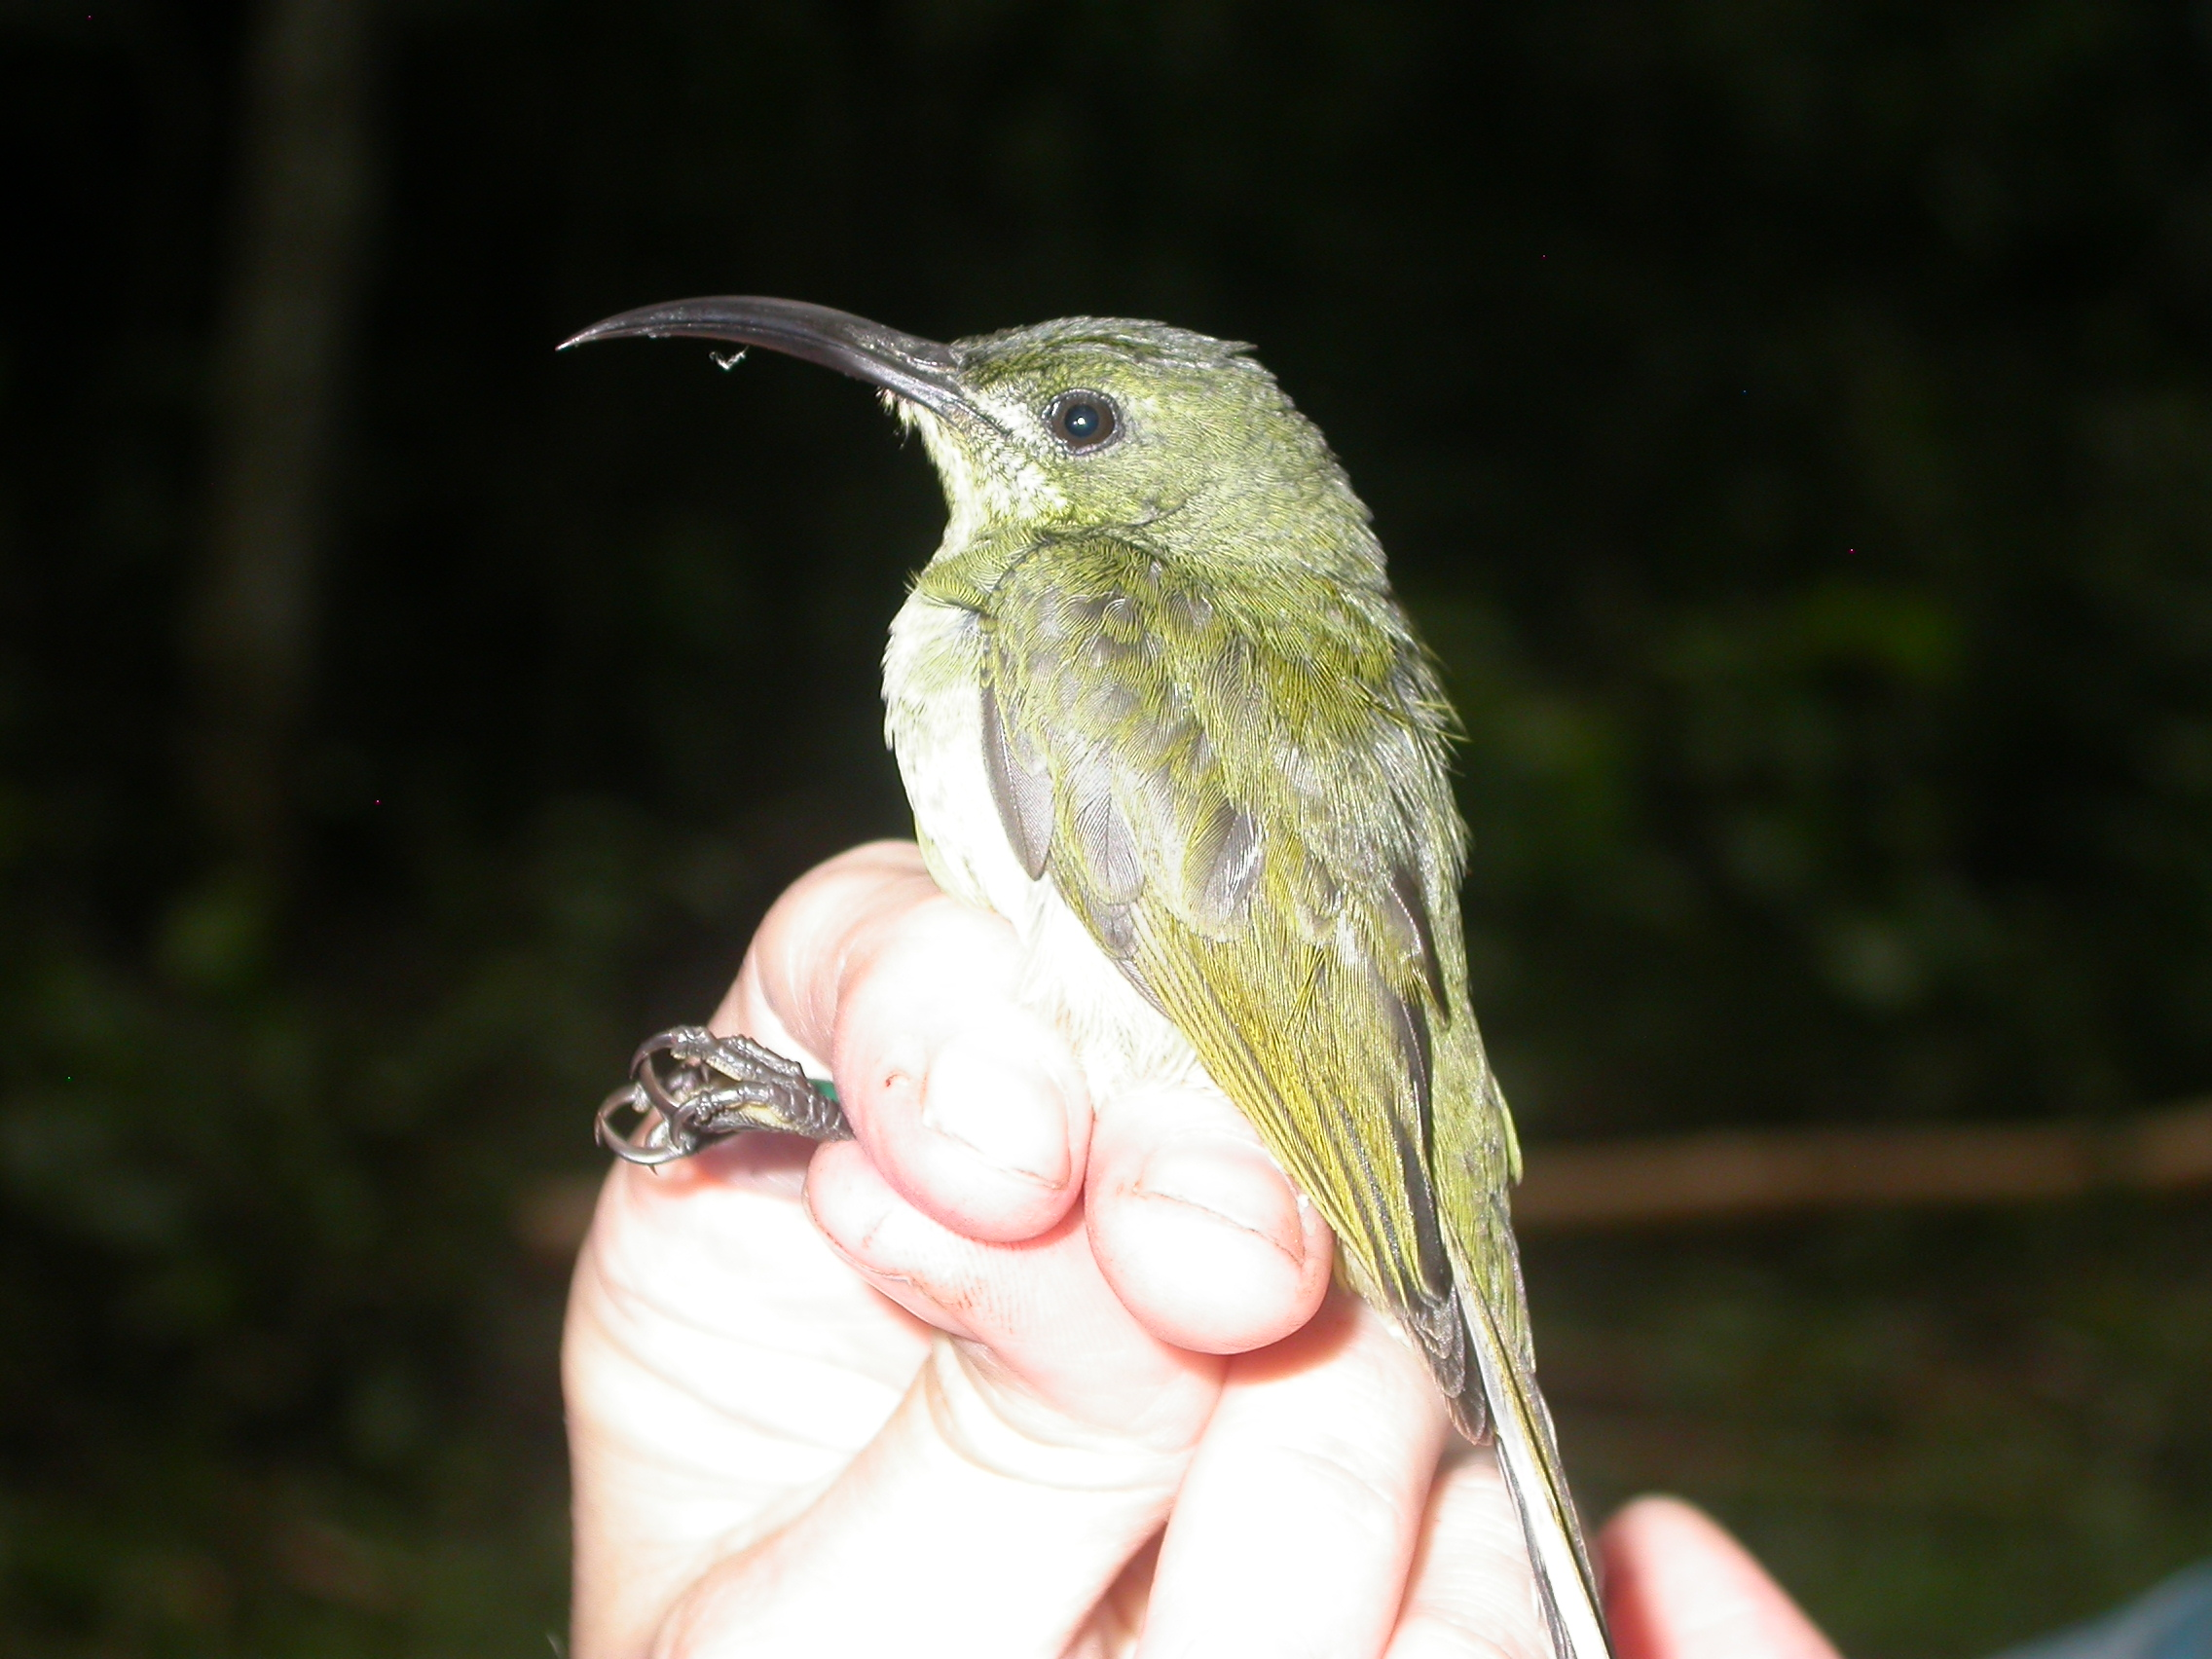 a small green bird with a long, curved bill